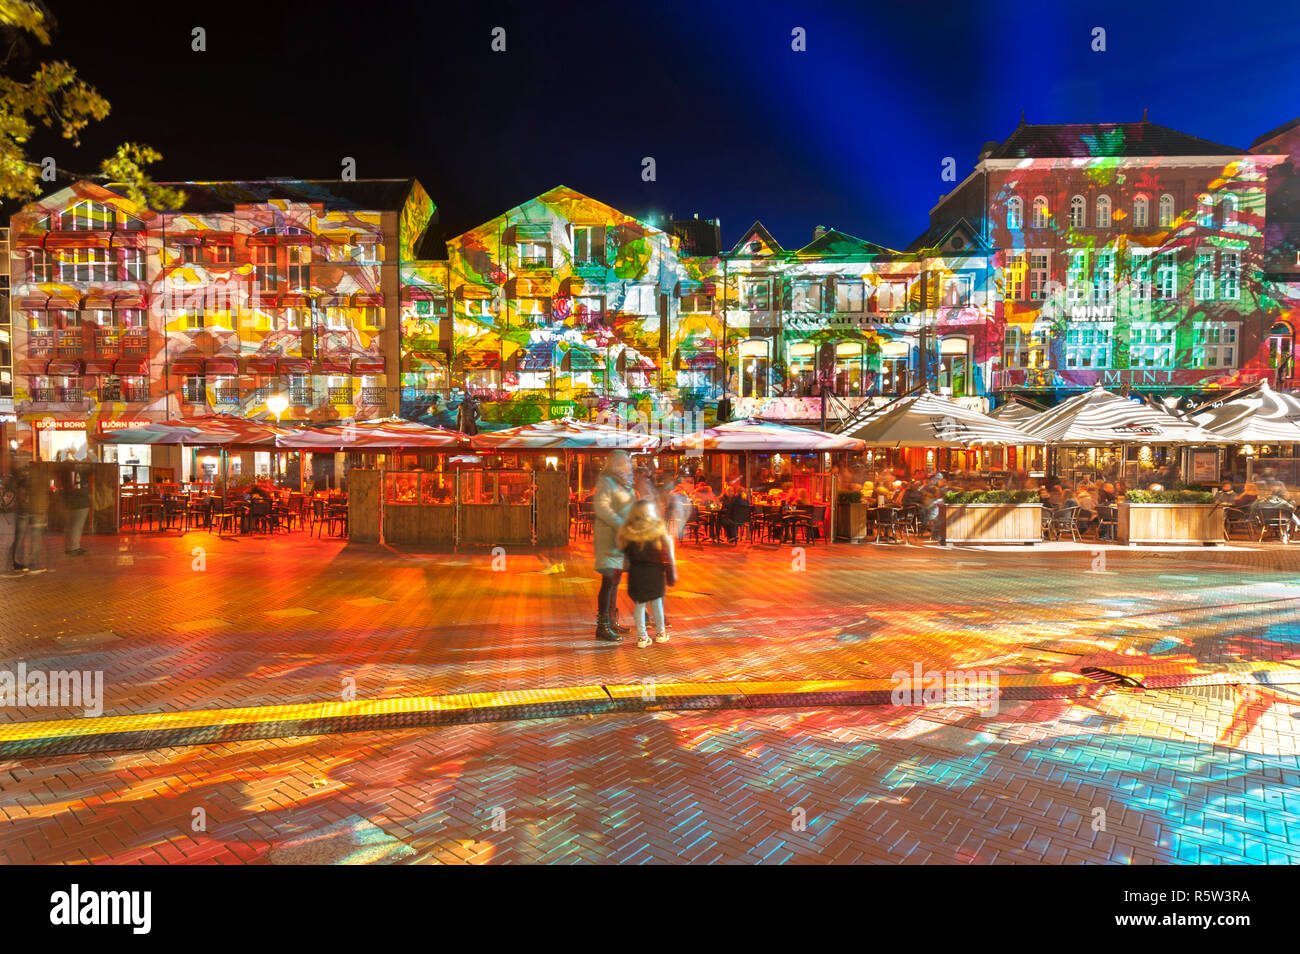 """Square with terrace and colorful light projection, artwork """"Immersive decelerator"""" (Georg Reisch of Pani) during light art festival GLOW Eindhoven. Stock Photo"""